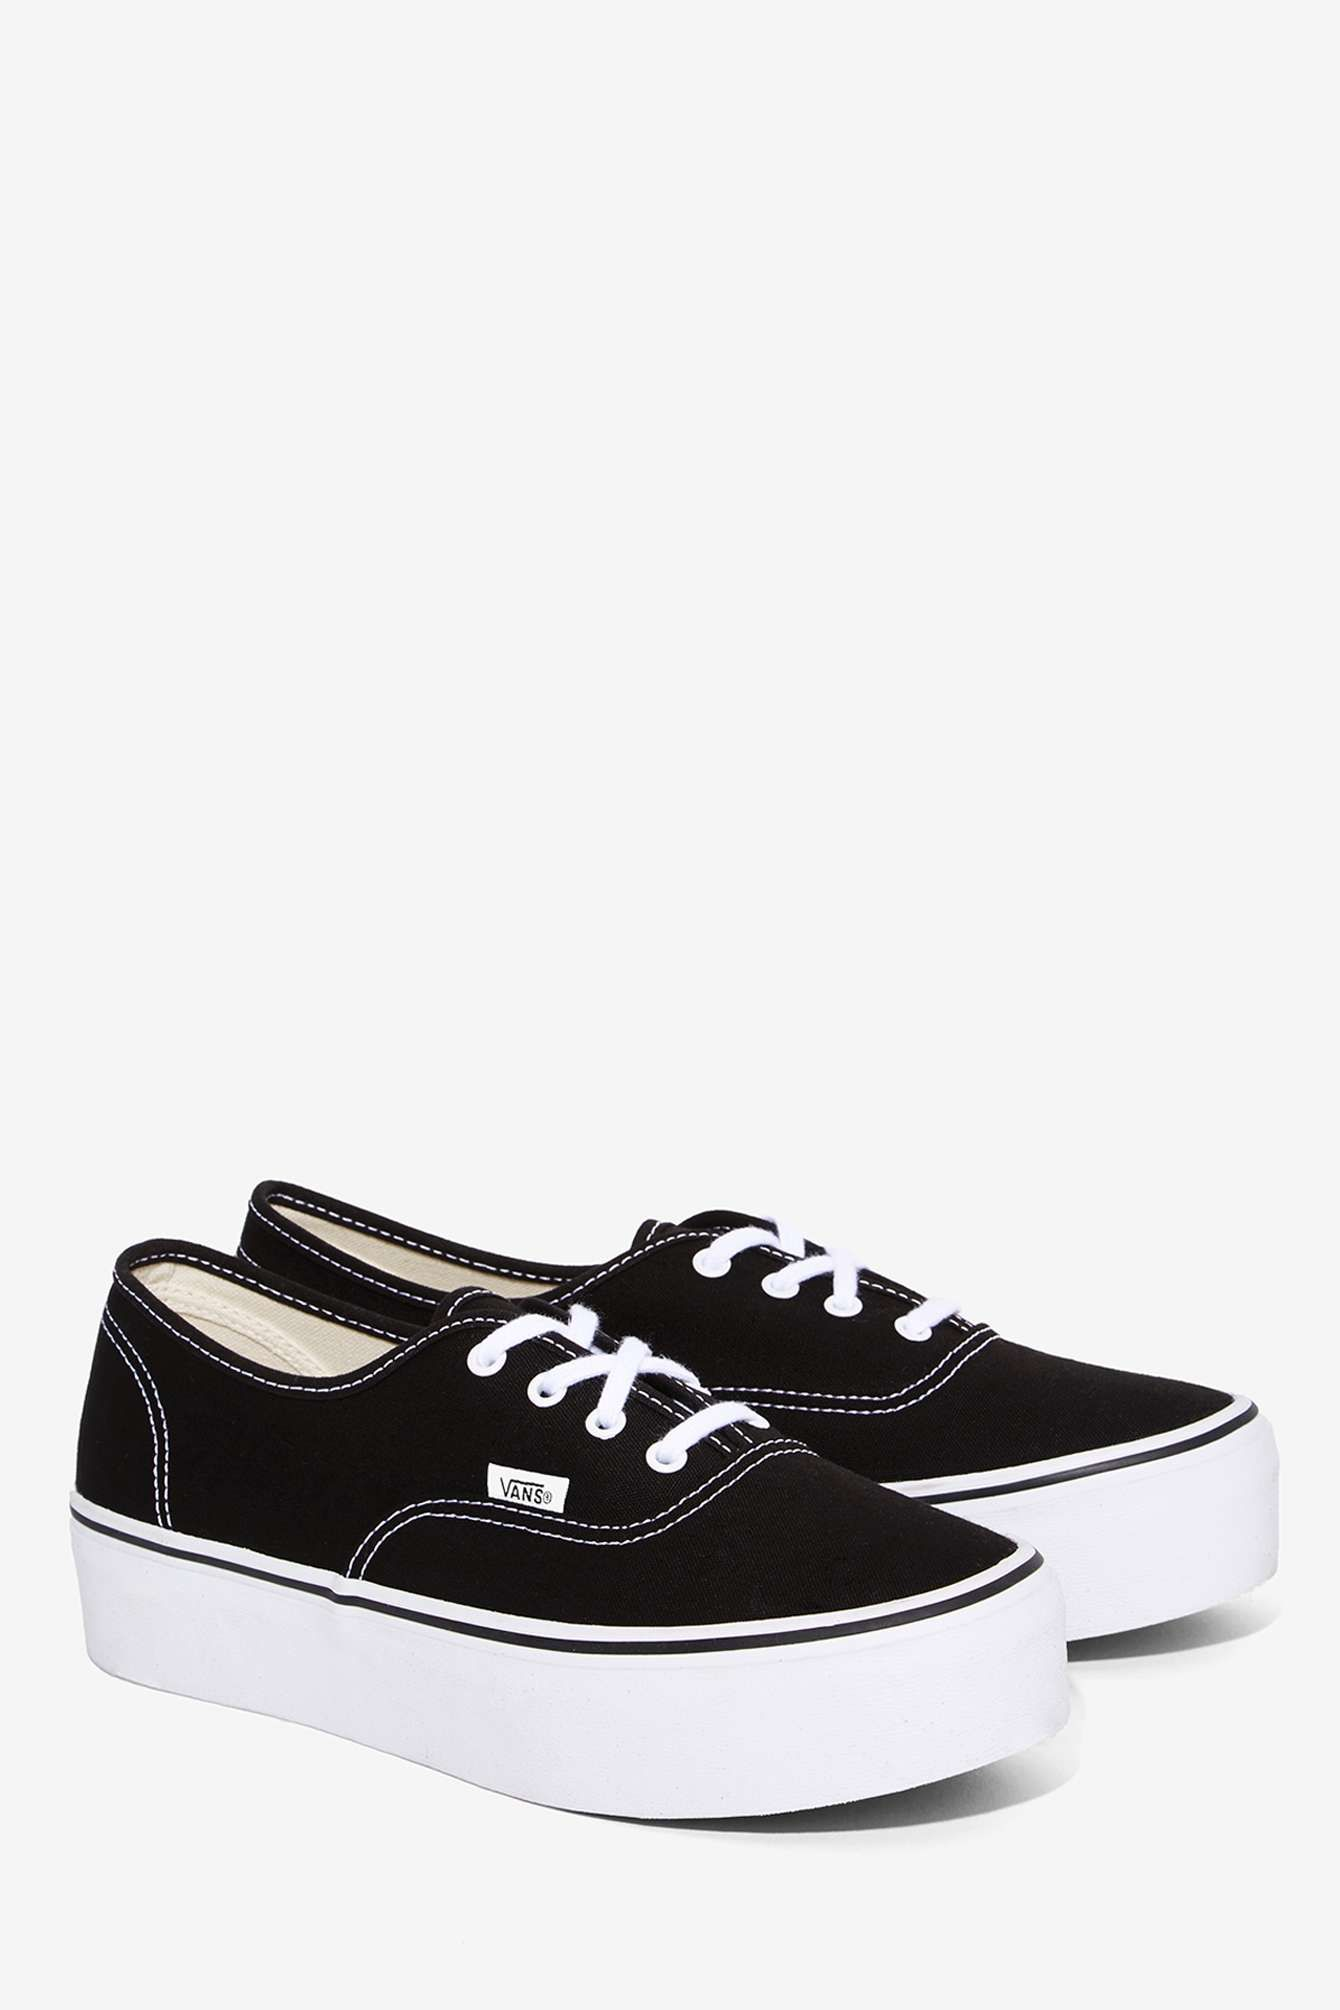 f82e372c55b Vans Authentic Platform Sneaker - Black